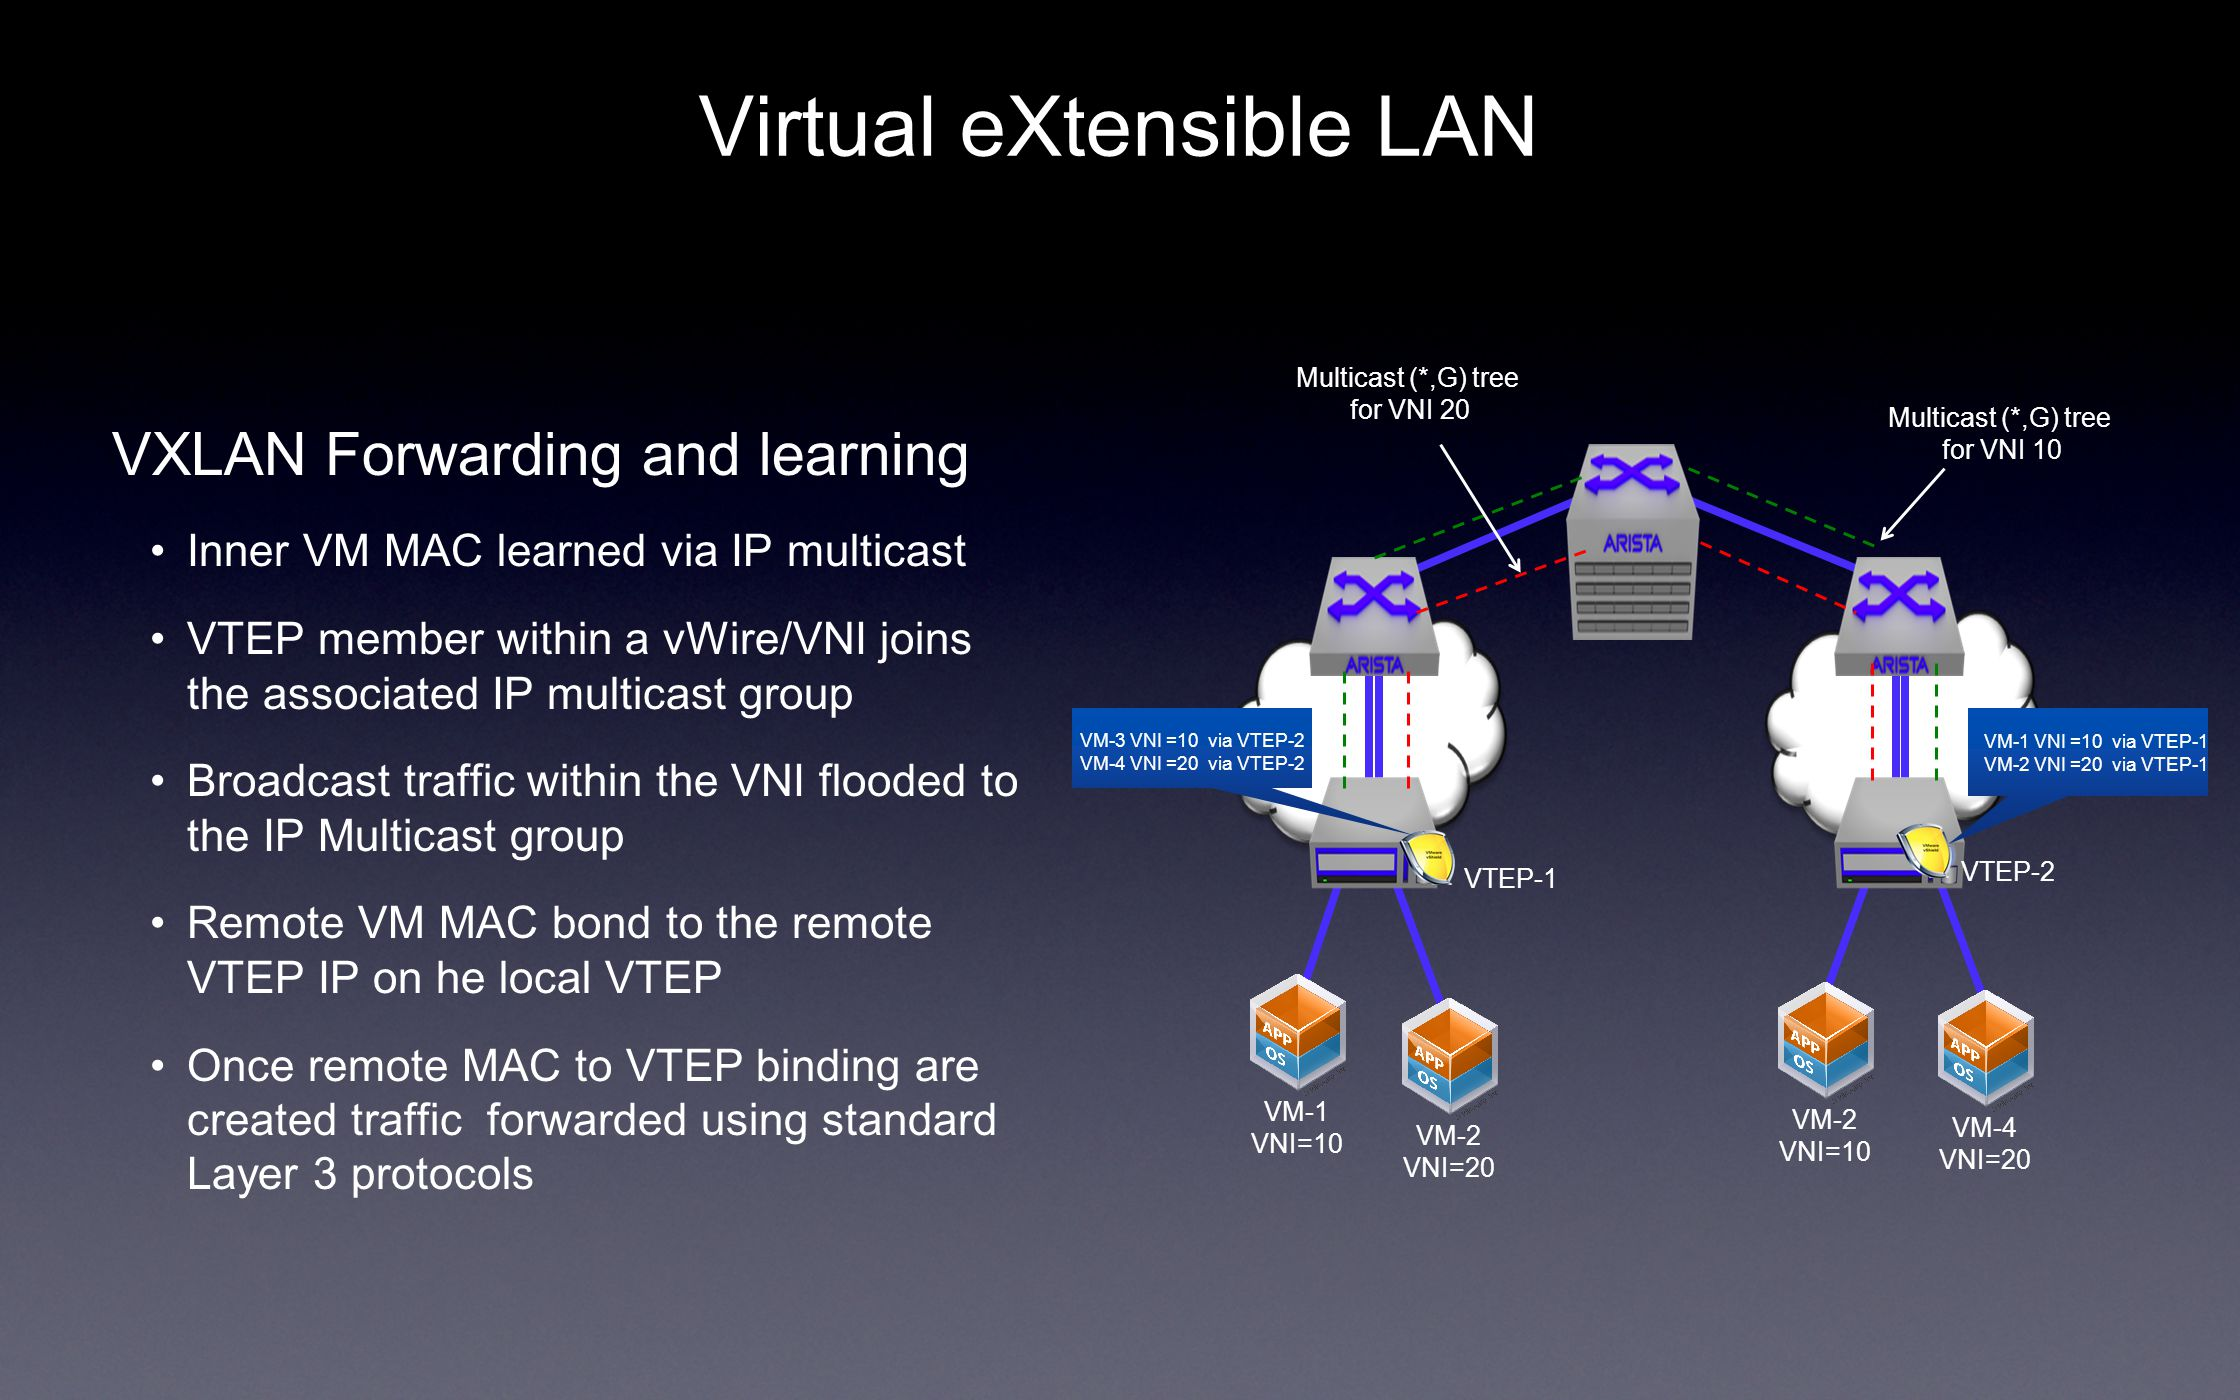 Virtual eXtensible LAN VXLAN Forwarding and learning Inner VM MAC learned via IP multicast VTEP member within a vWire/VNI joins the associated IP multicast group Broadcast traffic within the VNI flooded to the IP Multicast group Remote VM MAC bond to the remote VTEP IP on he local VTEP Once remote MAC to VTEP binding are created traffic forwarded using standard Layer 3 protocols VTEP-1 VTEP-2 VM-1 VNI =10 via VTEP-1 VM-2 VNI =20 via VTEP-1 VM-1 VNI=10 VM-2 VNI=20 VM-4 VNI=20 VM-2 VNI=10 VM-3 VNI =10 via VTEP-2 VM-4 VNI =20 via VTEP-2 Multicast (*,G) tree for VNI 10 Multicast (*,G) tree for VNI 20